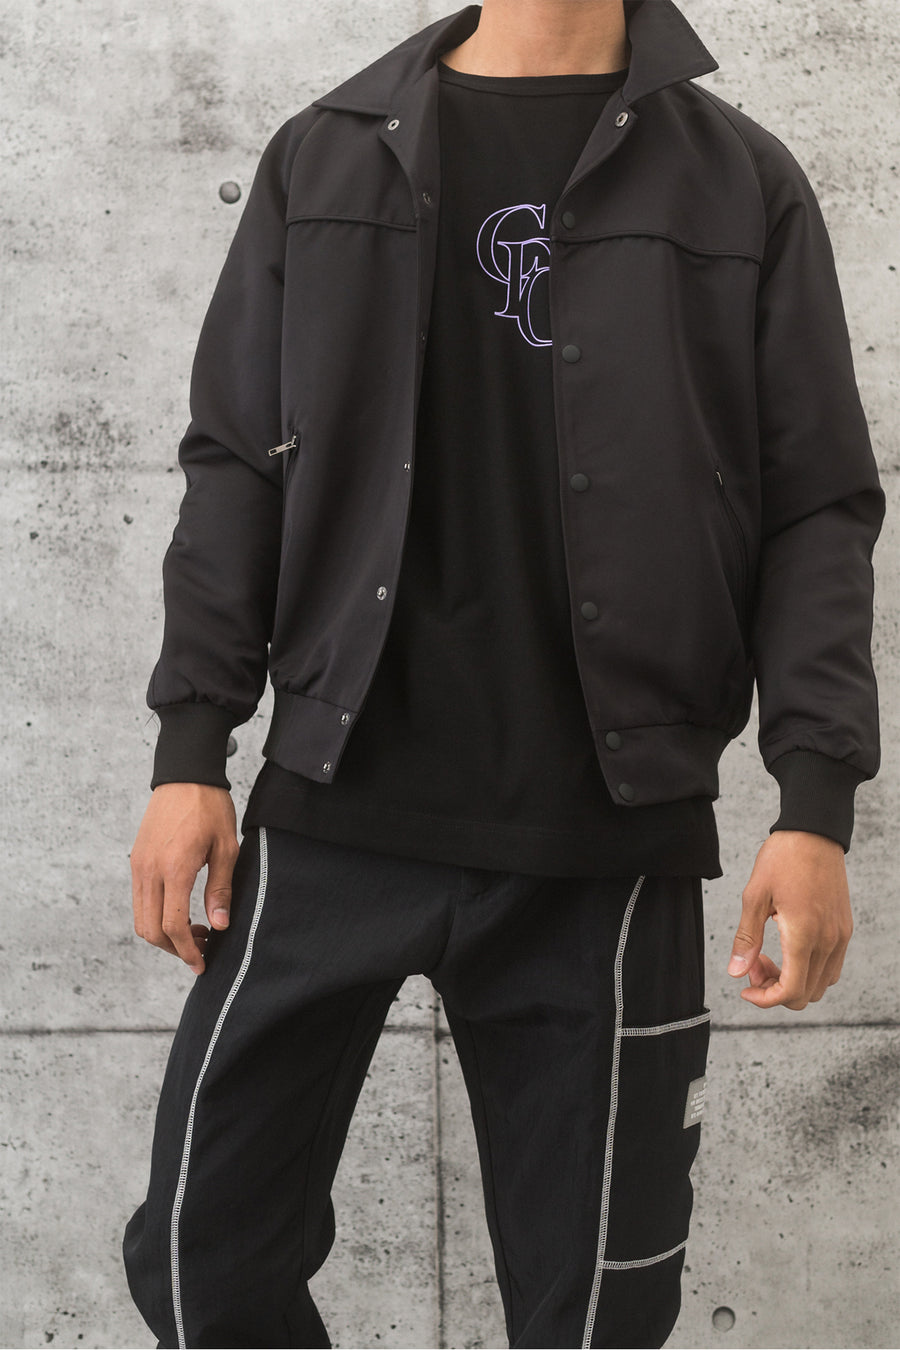 GFC - Teamster Jacket 2.0 - Black